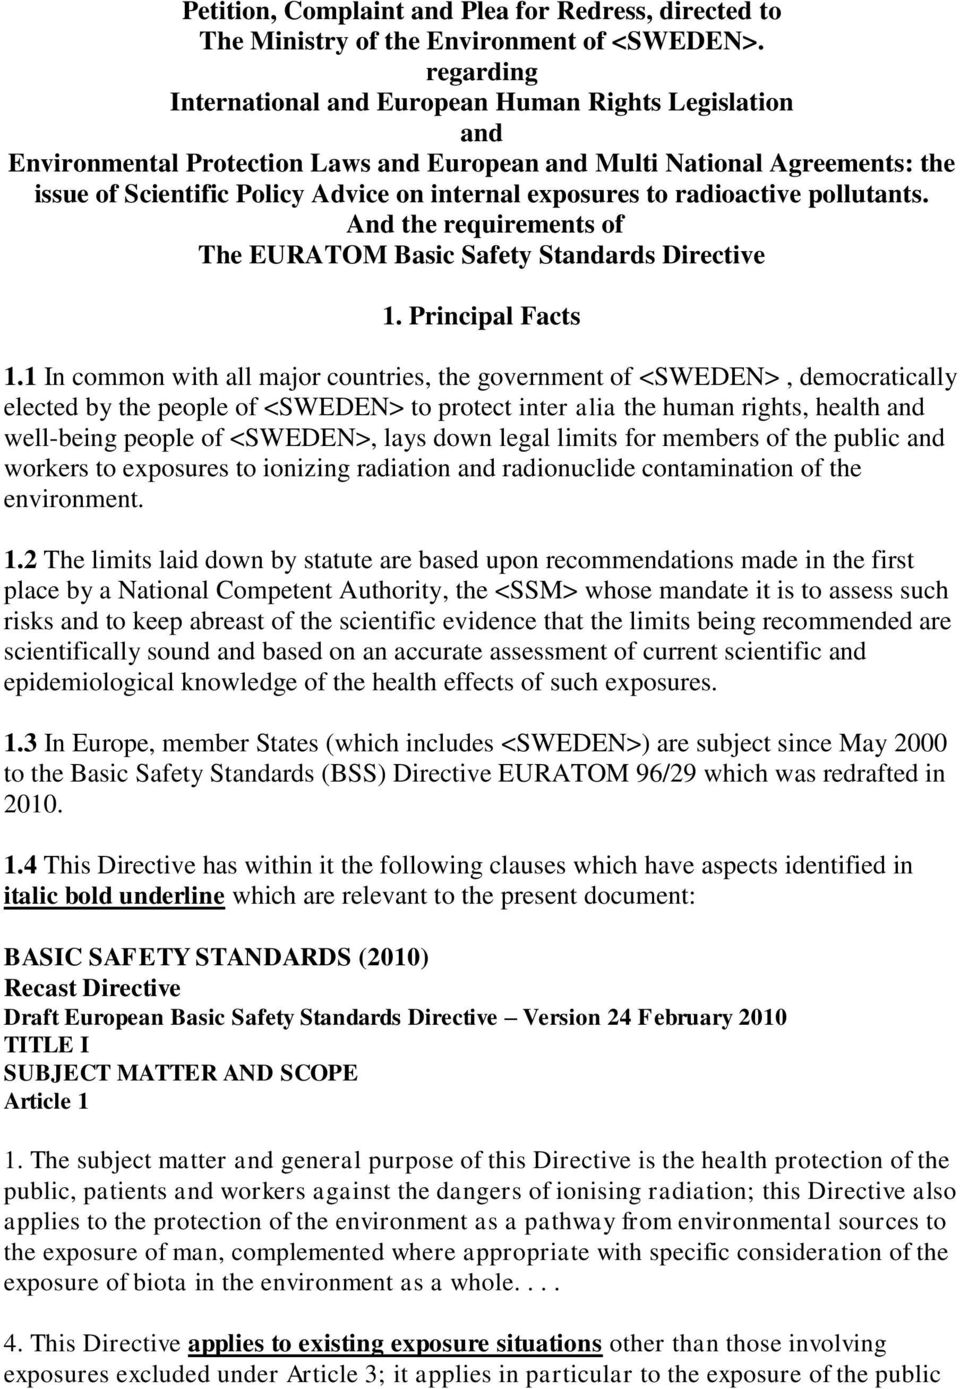 to radioactive pollutants. And the requirements of The EURATOM Basic Safety Standards Directive 1. Principal Facts 1.